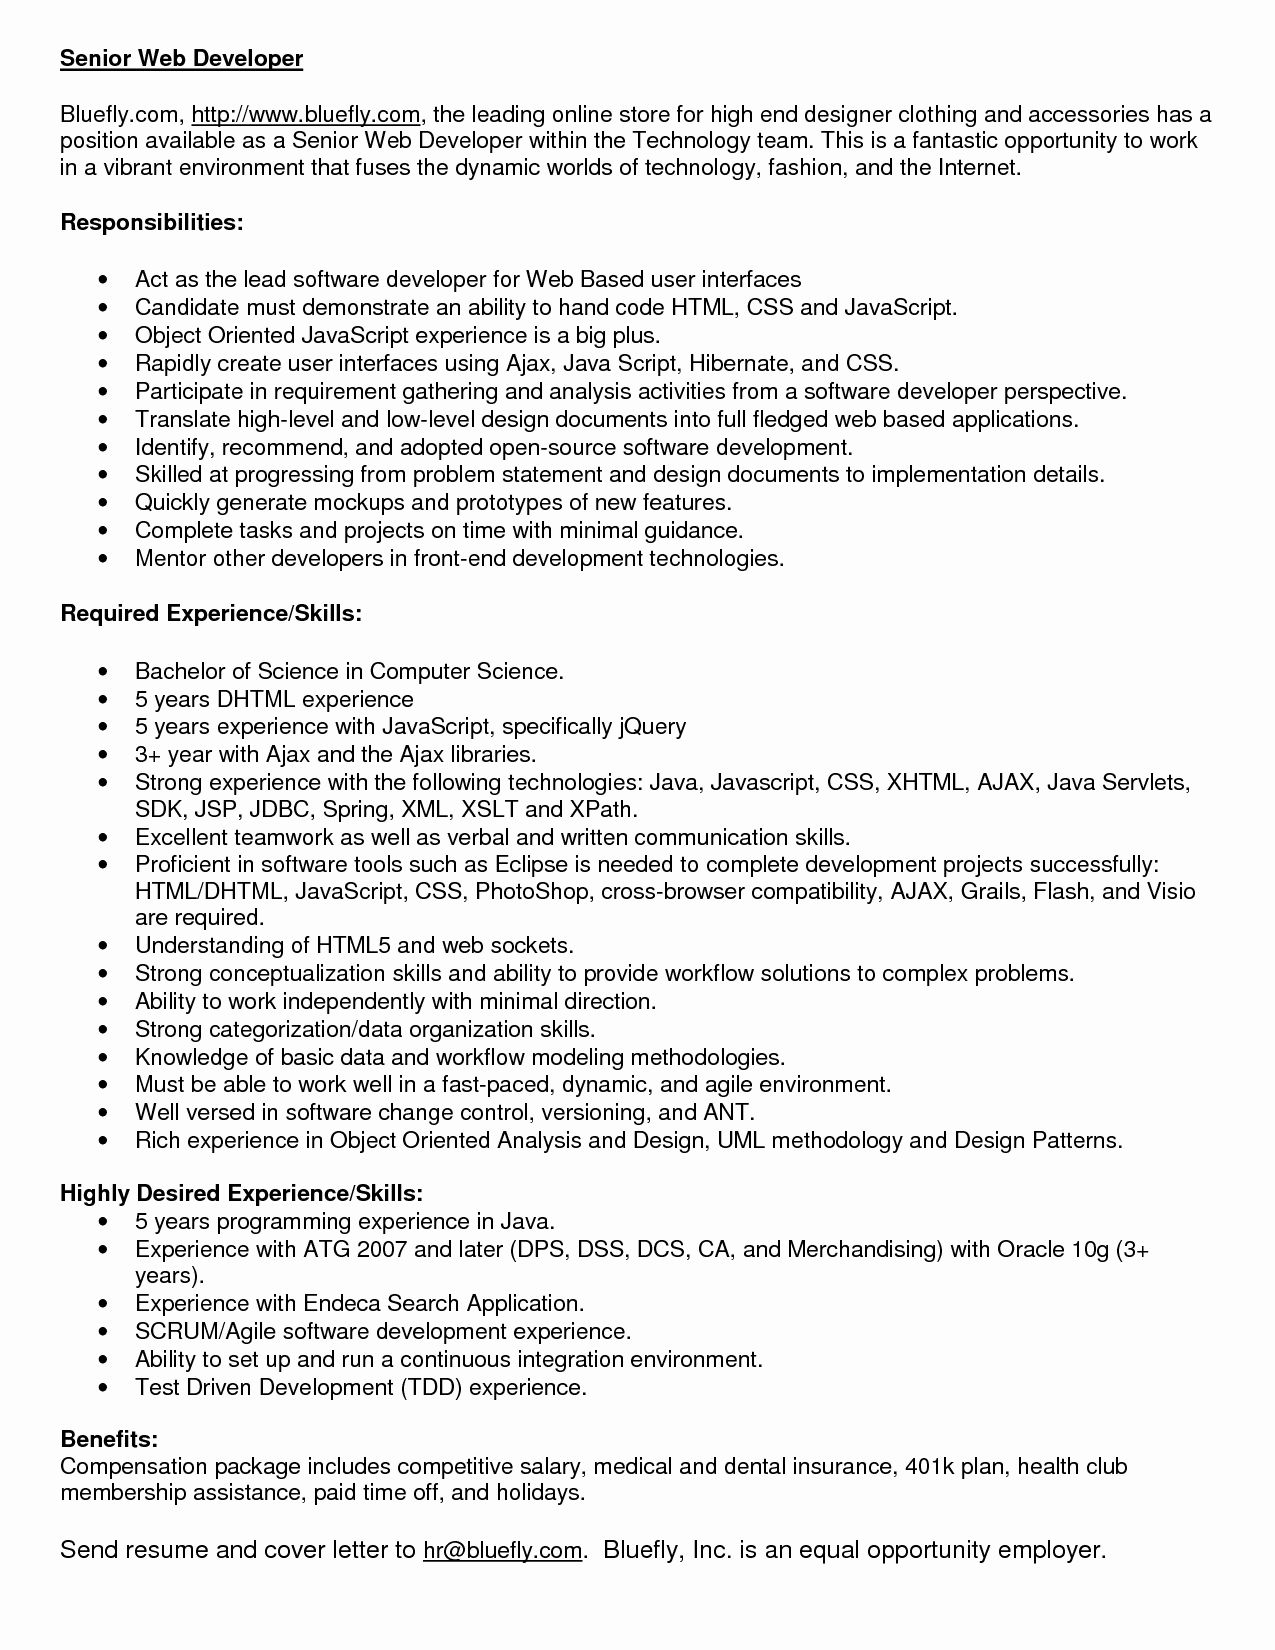 50 luxury retail sales consultant resume in 2020  with